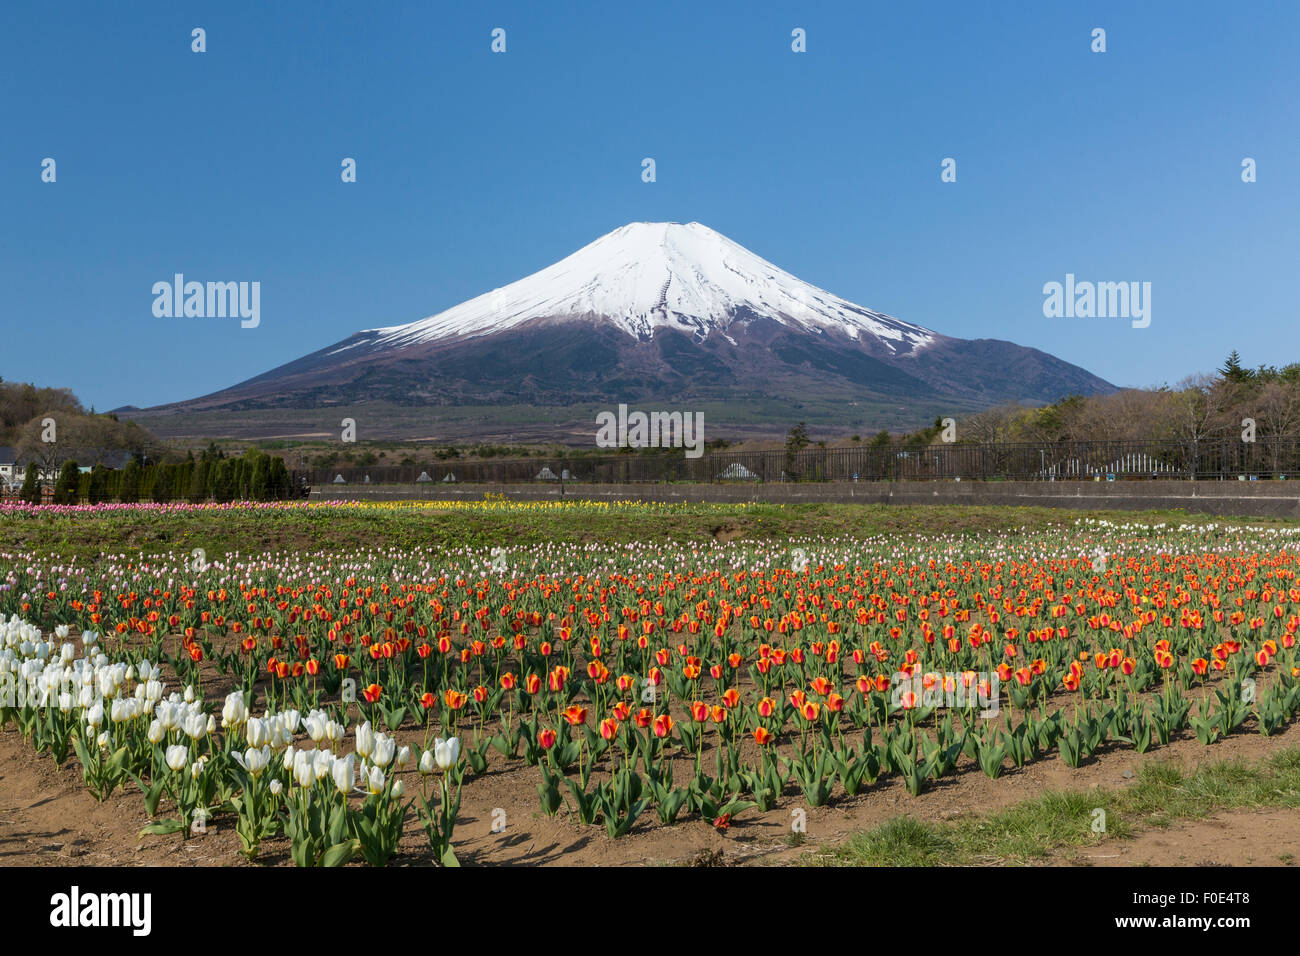 Mt Fuji And Tulip Flowers In Japan Stock Photo 86362984 Alamy